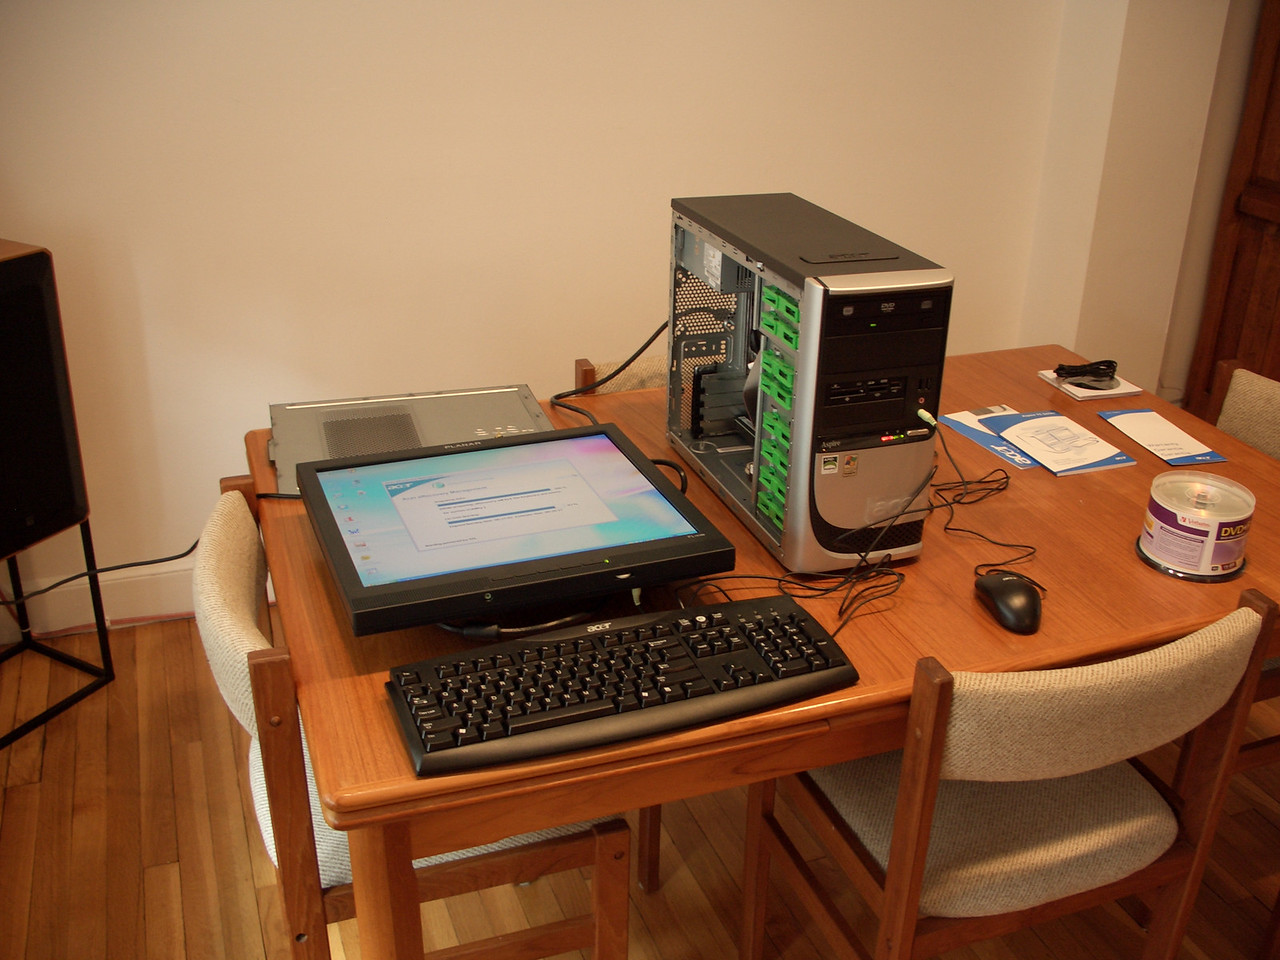 I forked out about $350 bucks for a low end ACER PC.  There were many considerations here.  I wasn't too concerned about computational horsepower as I figured the box would be used mostly for slide shows, watching video, and web browsing.  <br /> <br /> Noise was a concern.  It's a nice coincidence that slow PC's generate less heat, have smaller power supplies, and correspondingly tiny, quiet, fans.  I went to several local stores just to put my ear on the cases of potential models (only drew a few odd looks).  <br /> <br /> This pick comes with 512MB RAM, DVD burner, plenty of USB 2.0 ports, on-board audio/video.  I removed the modem card that was included.  I also got rid of the mouse and keyboard, but more on that in a minute.